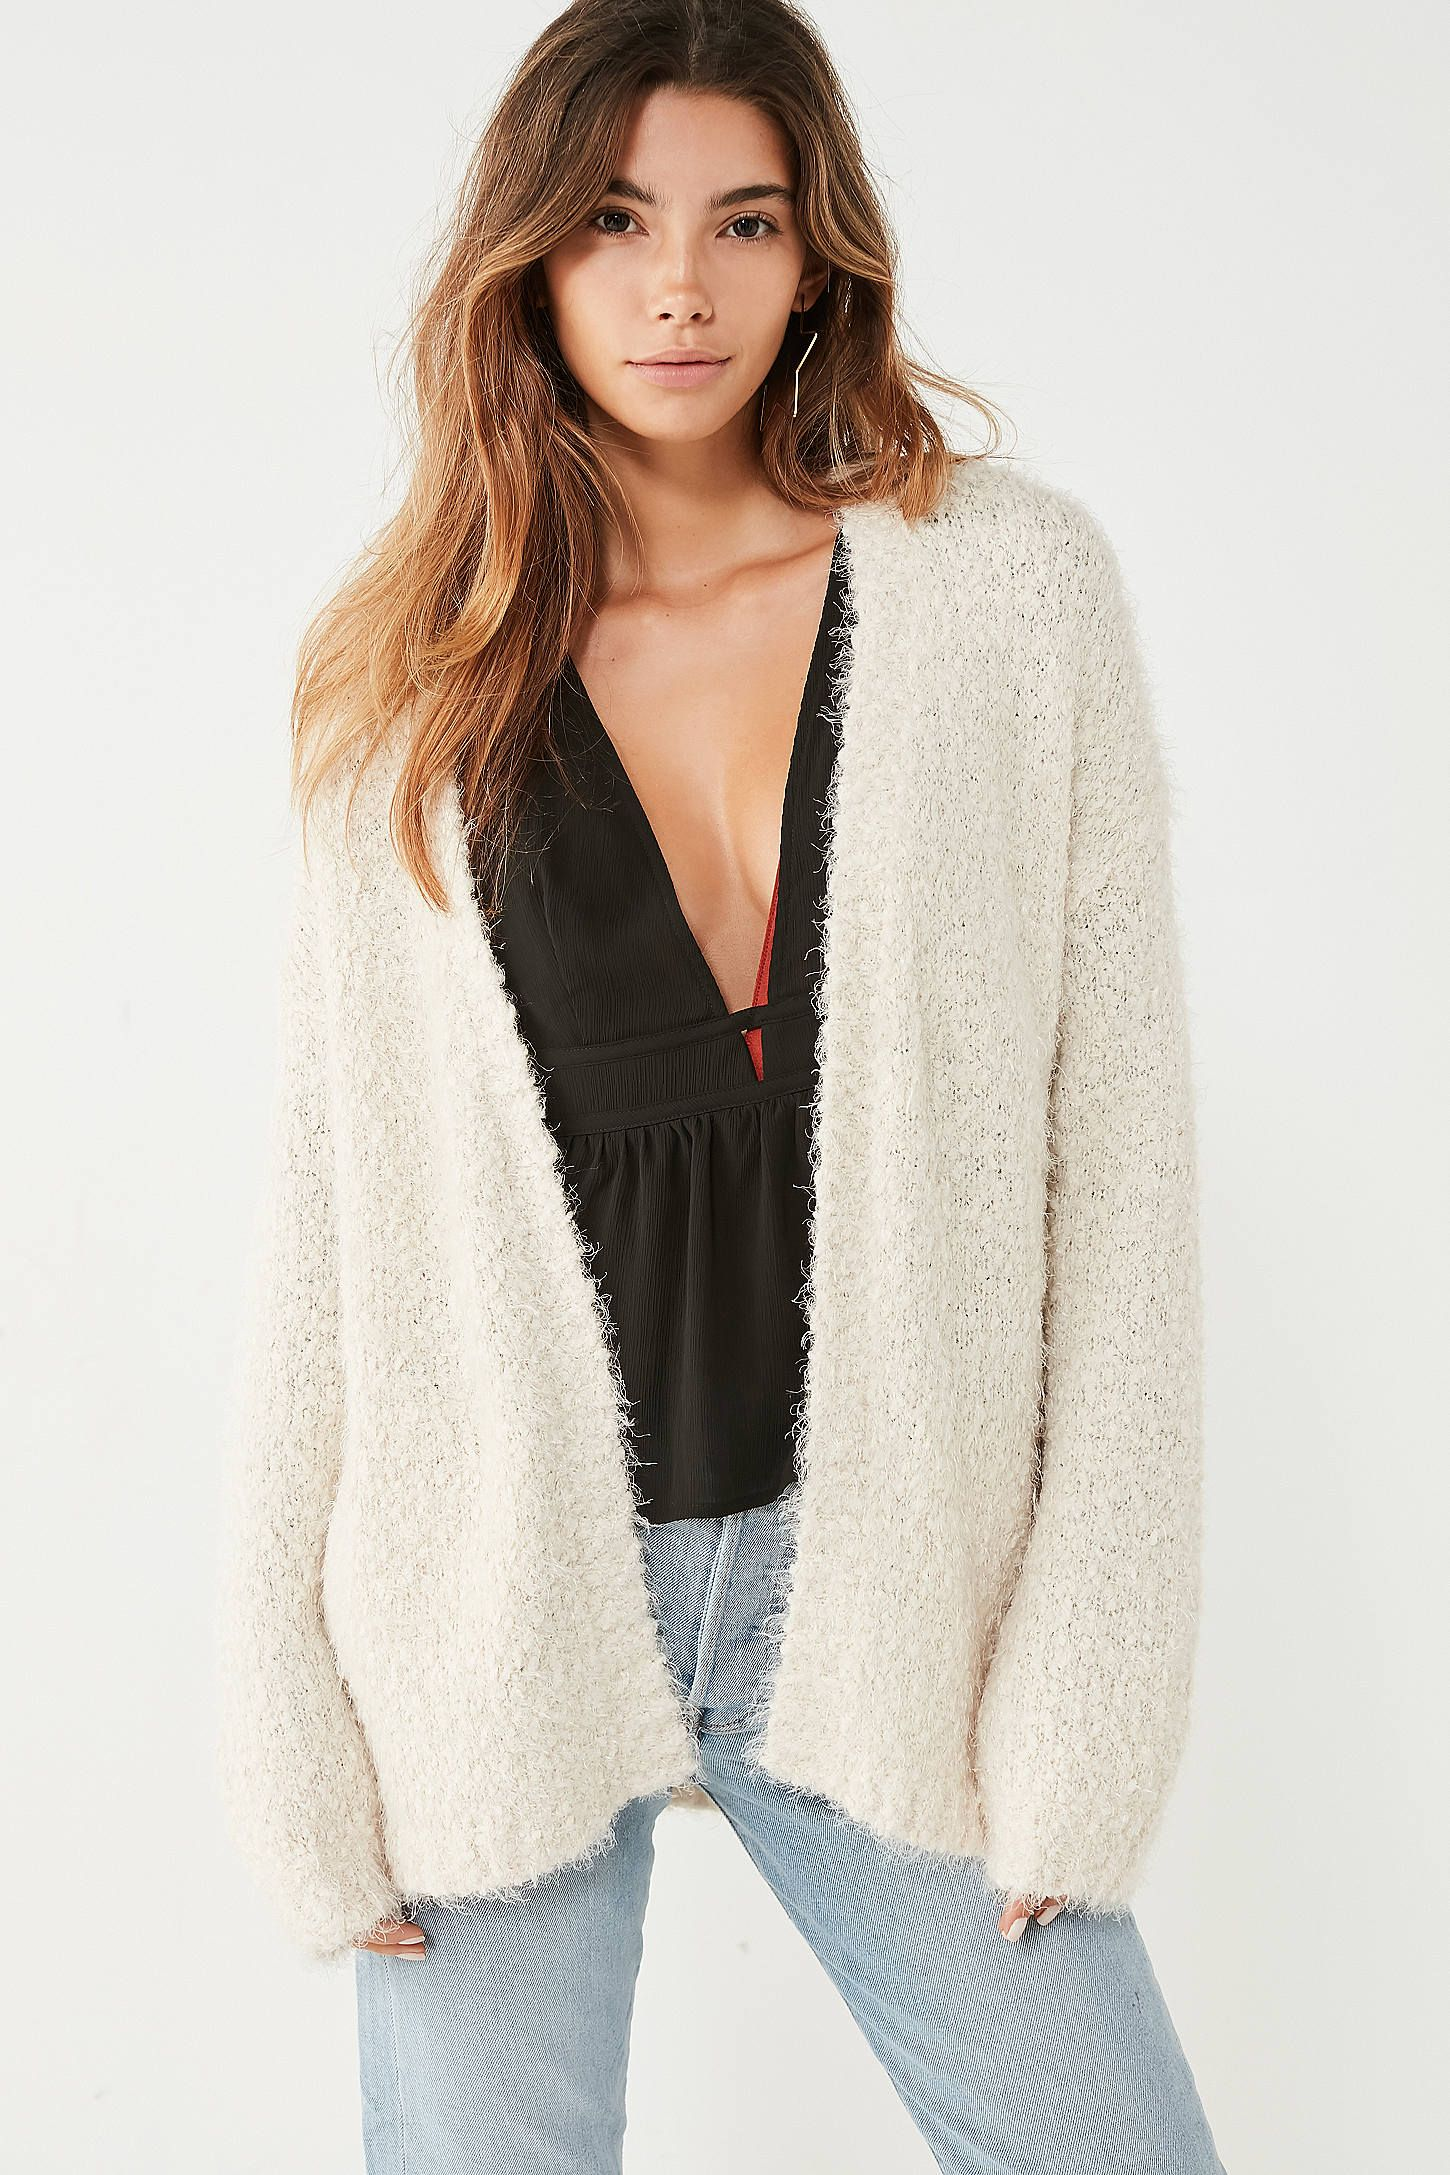 Ecote Elena Fluffy Cardigan | Latest styles, Urban outfitters and ...